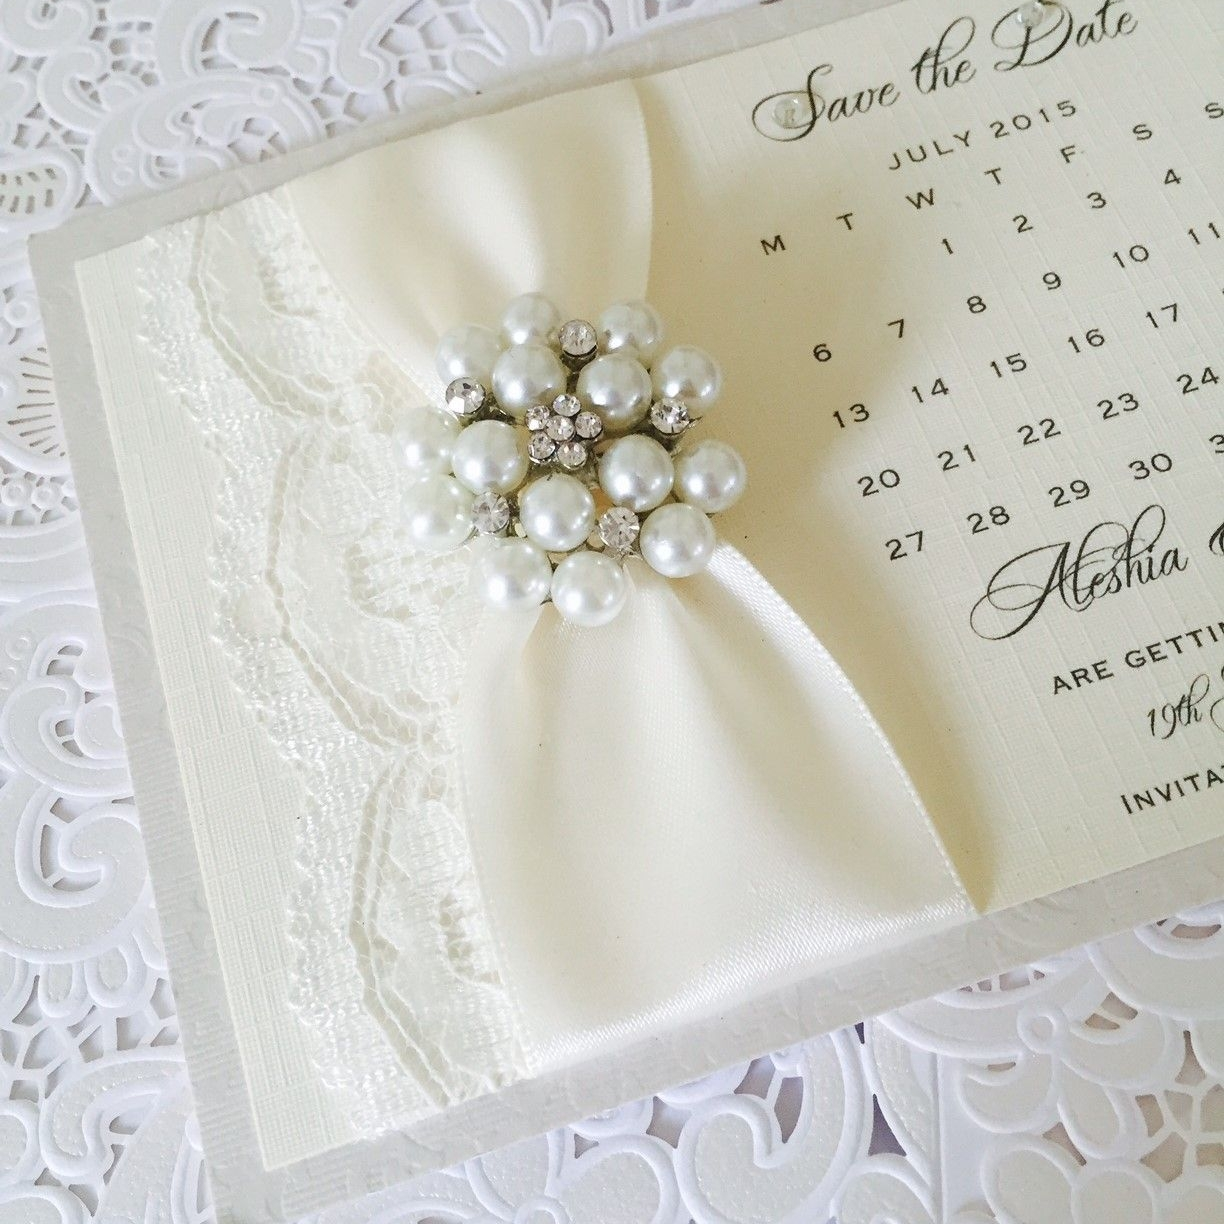 Vintage style save the date card with ivory lace and brooch